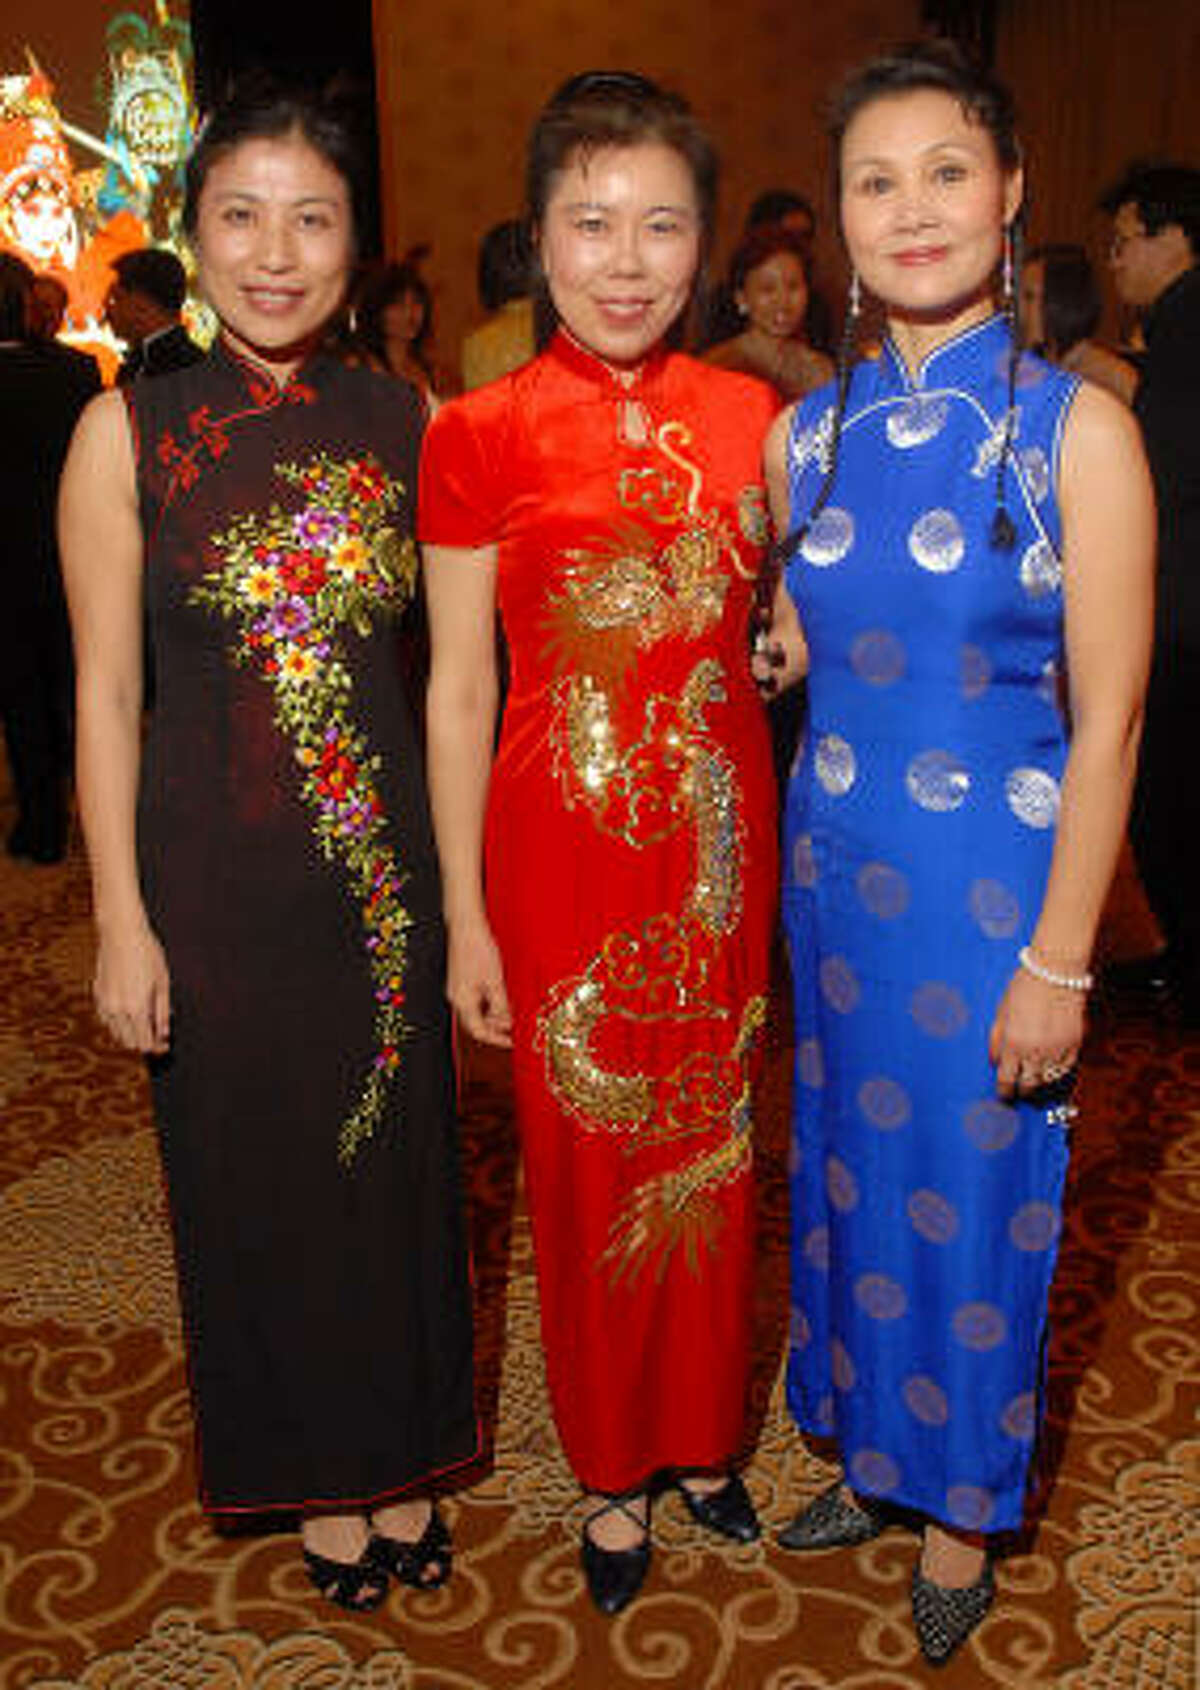 From left: Grace Fu, Rosay Ha and Chery Pan